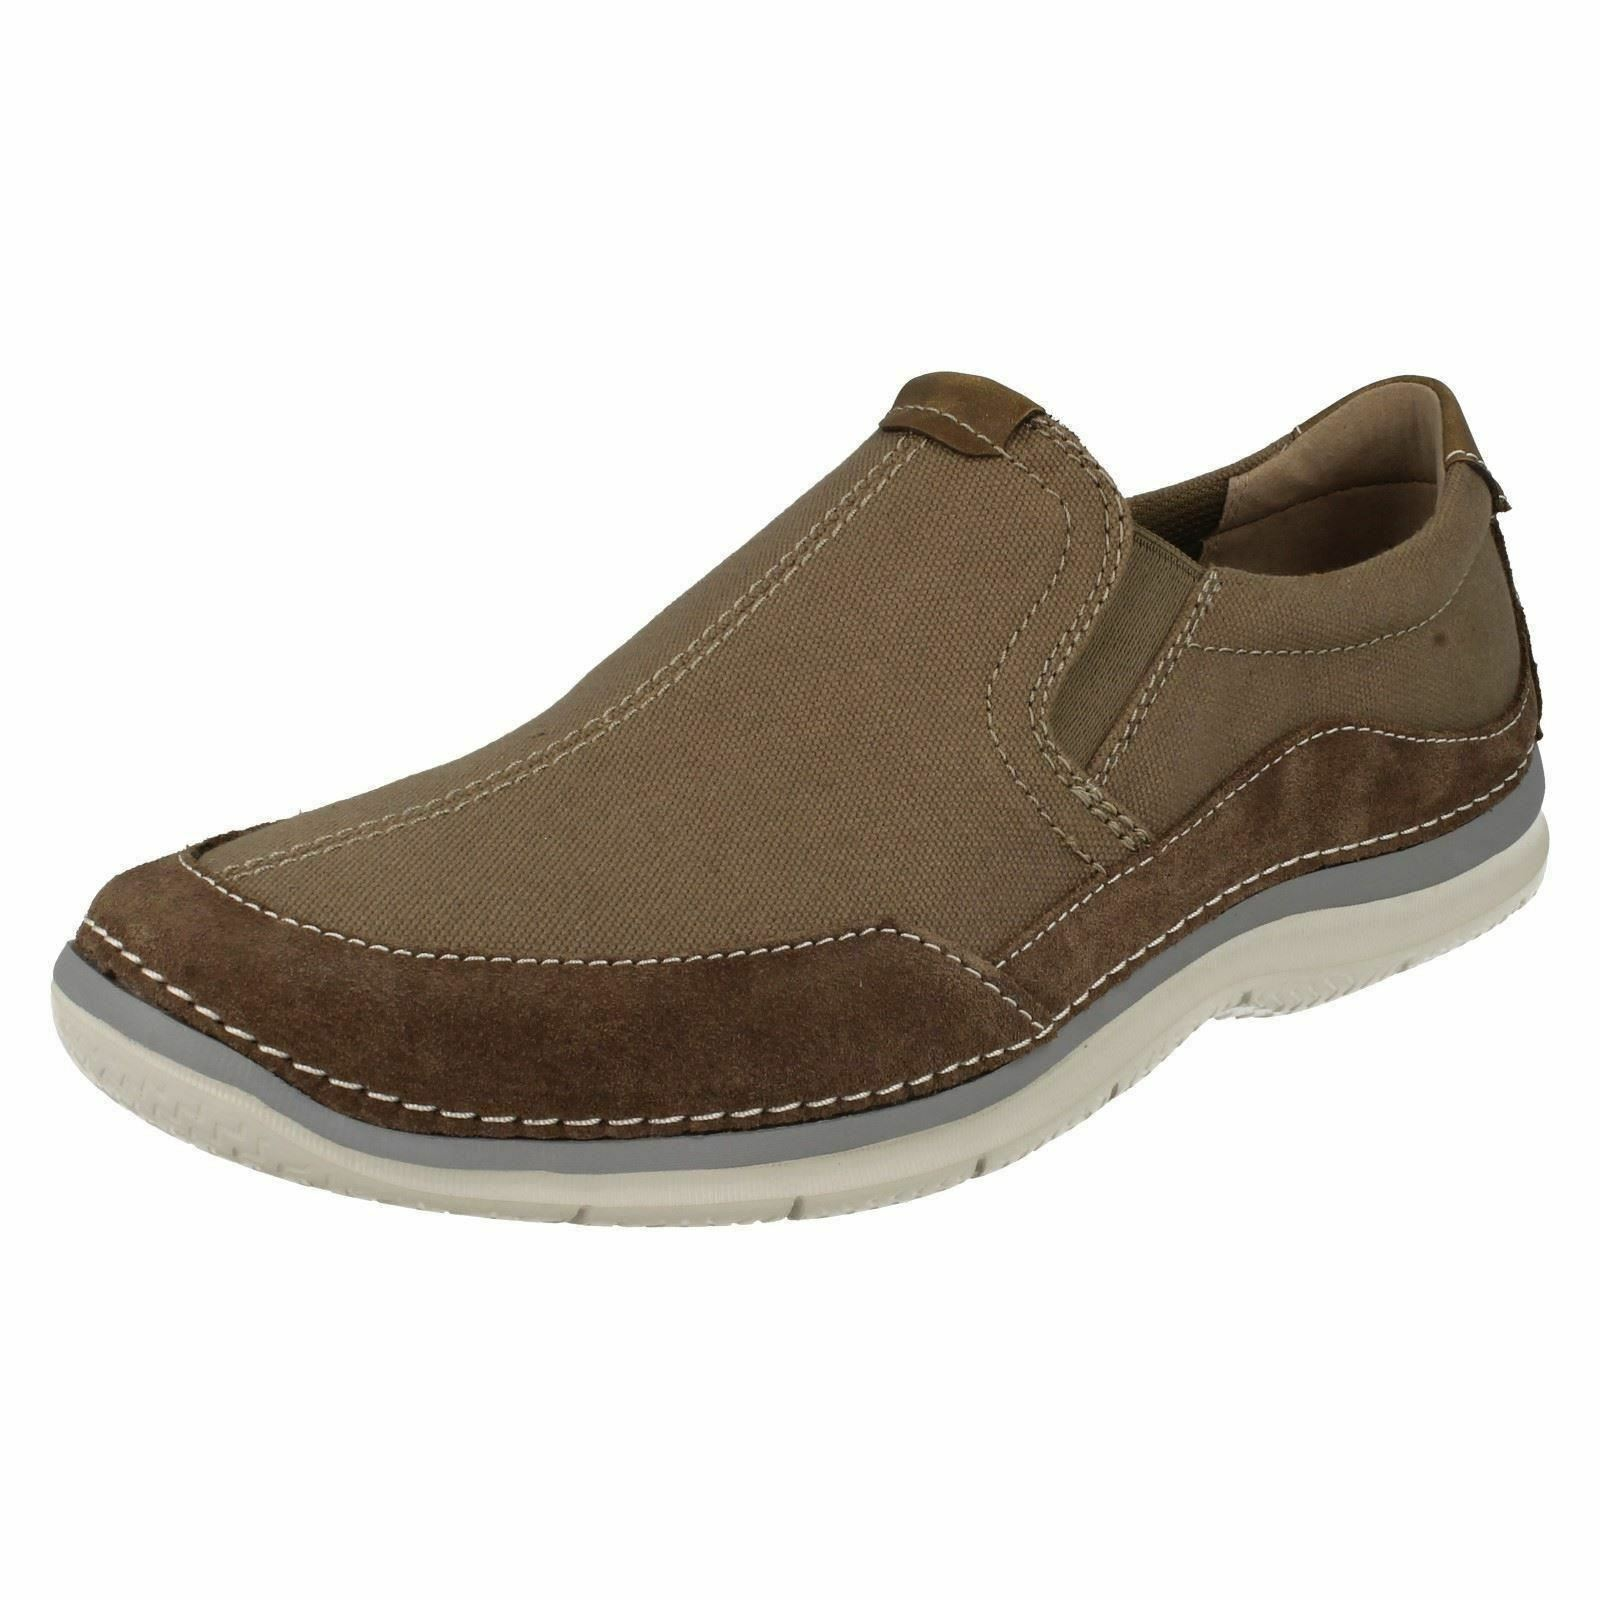 SALE Mens Clarks Olive Canvas Slip On shoes G Fitting Ripton Free